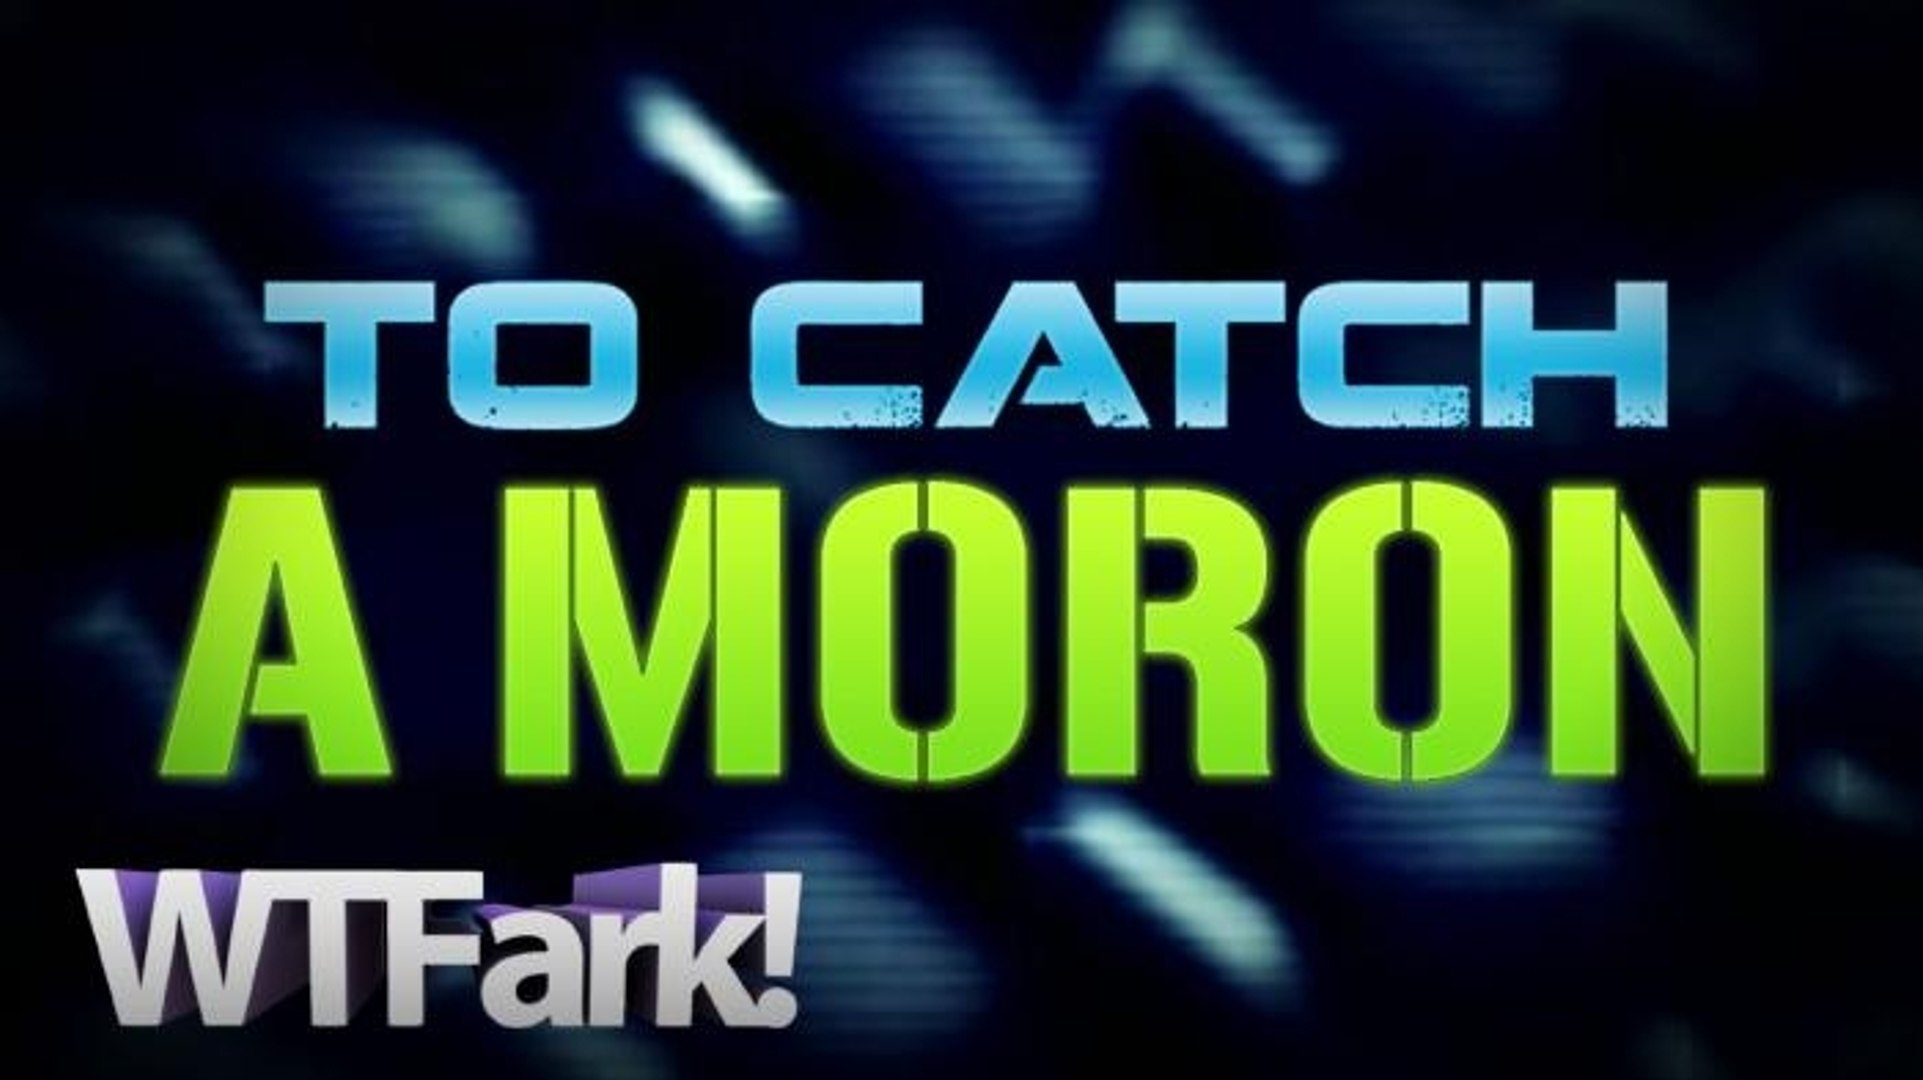 TO CATCH A MORON: Crook Caught After He Drops ID During Robbery, CAUGHT ON TAPE! LIVE! EXCLUSIVE! ON